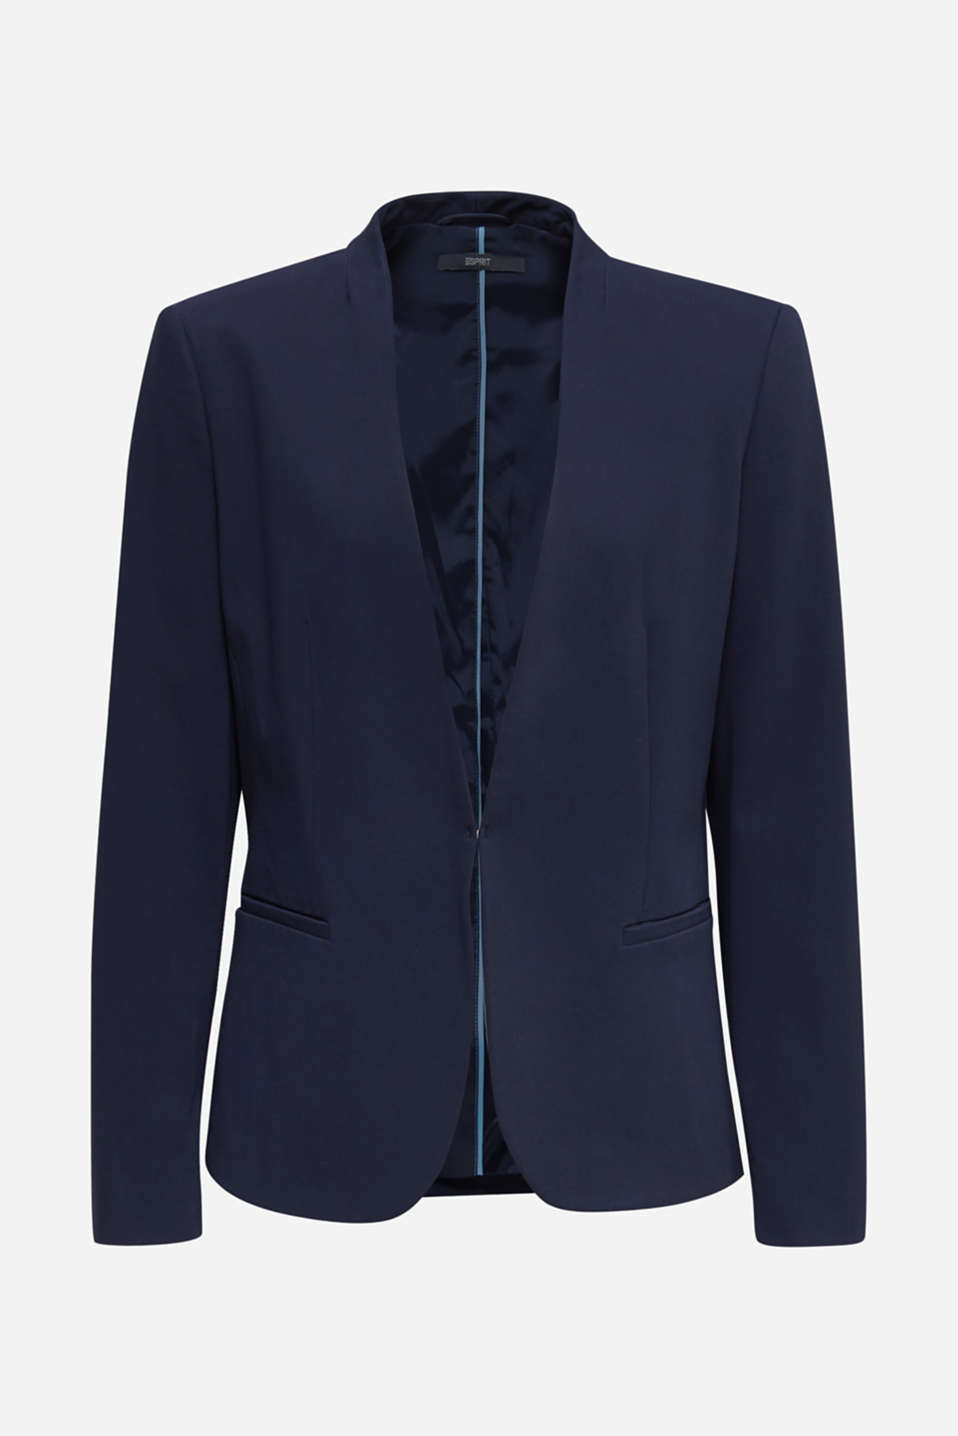 MODERN mix + match blazer, NAVY, detail image number 6